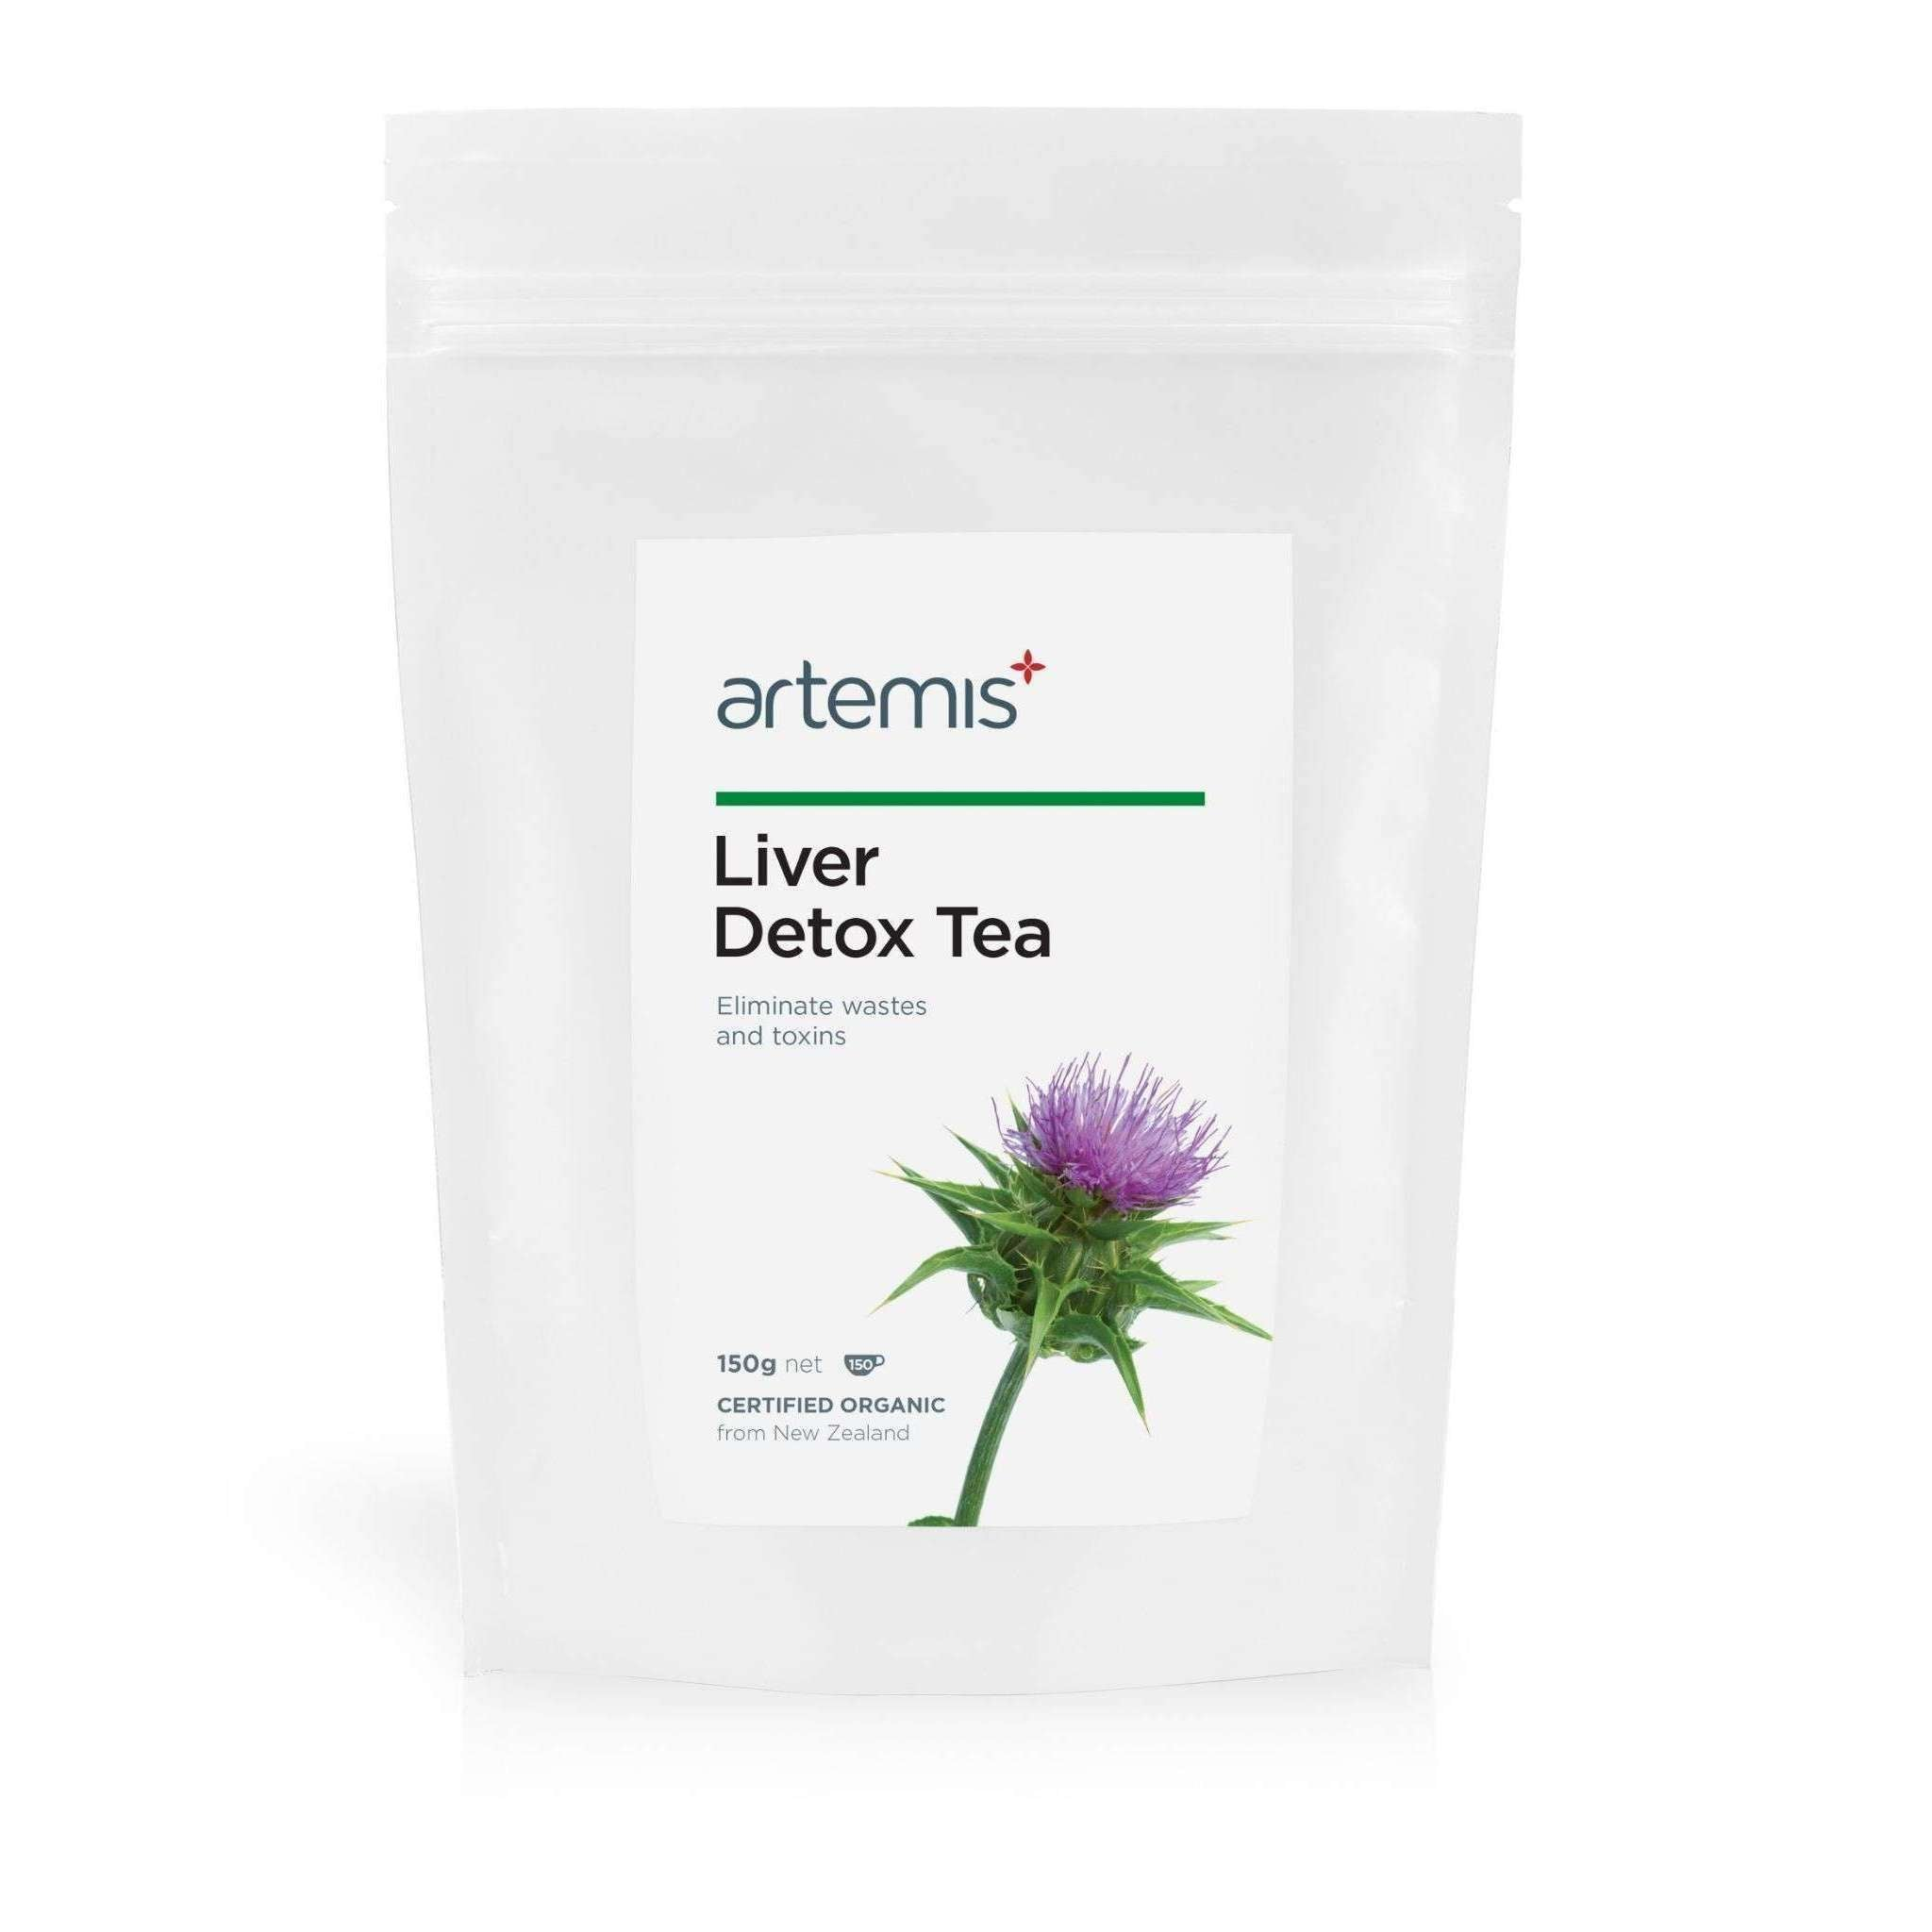 Artemis Herbal Medicine Liver Detox Tea